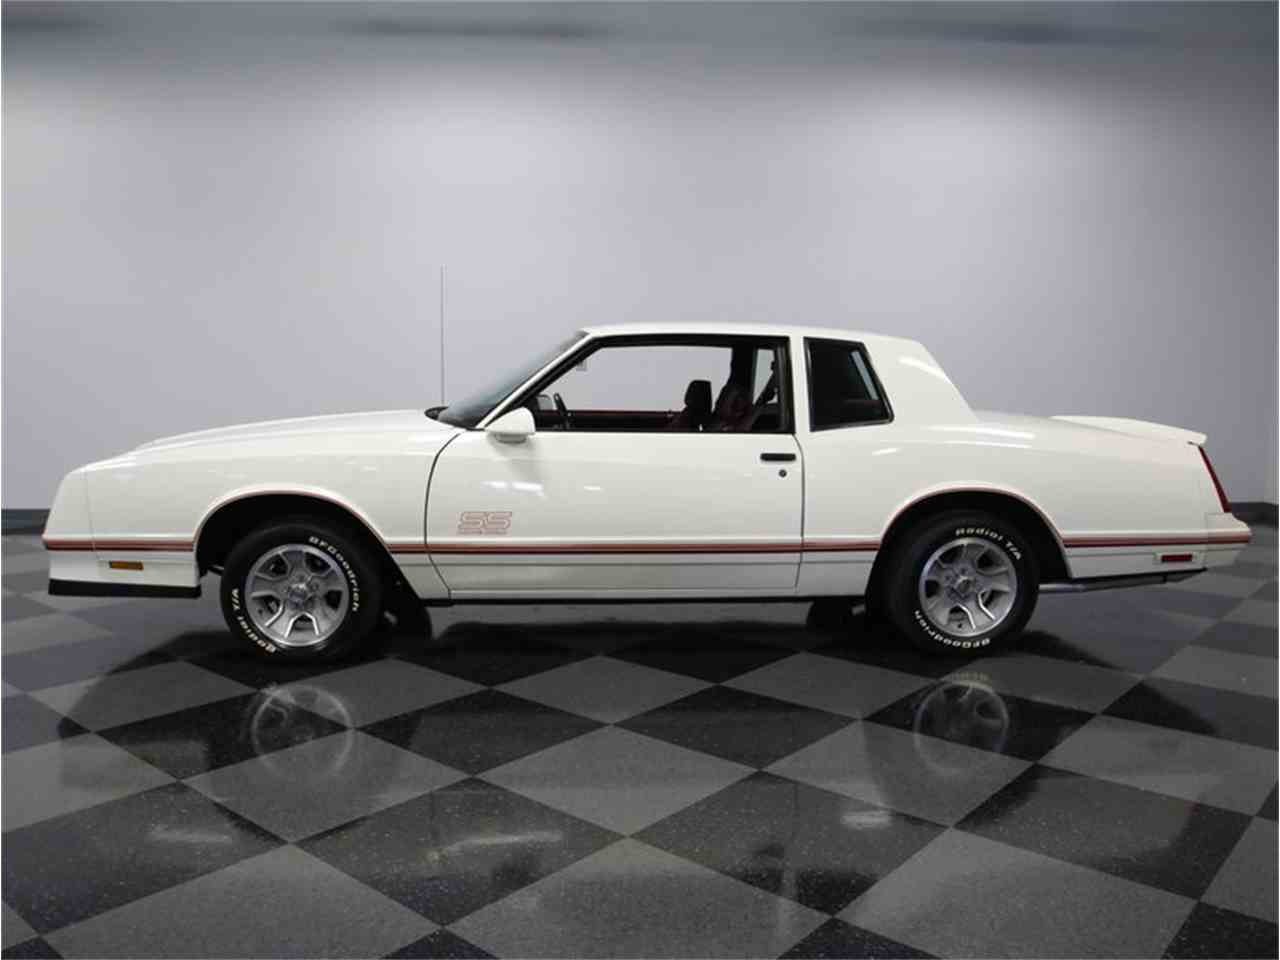 All Chevy 1987 chevrolet monte carlo ss : 1987 Chevrolet Monte Carlo SS for Sale | ClassicCars.com | CC-1002659